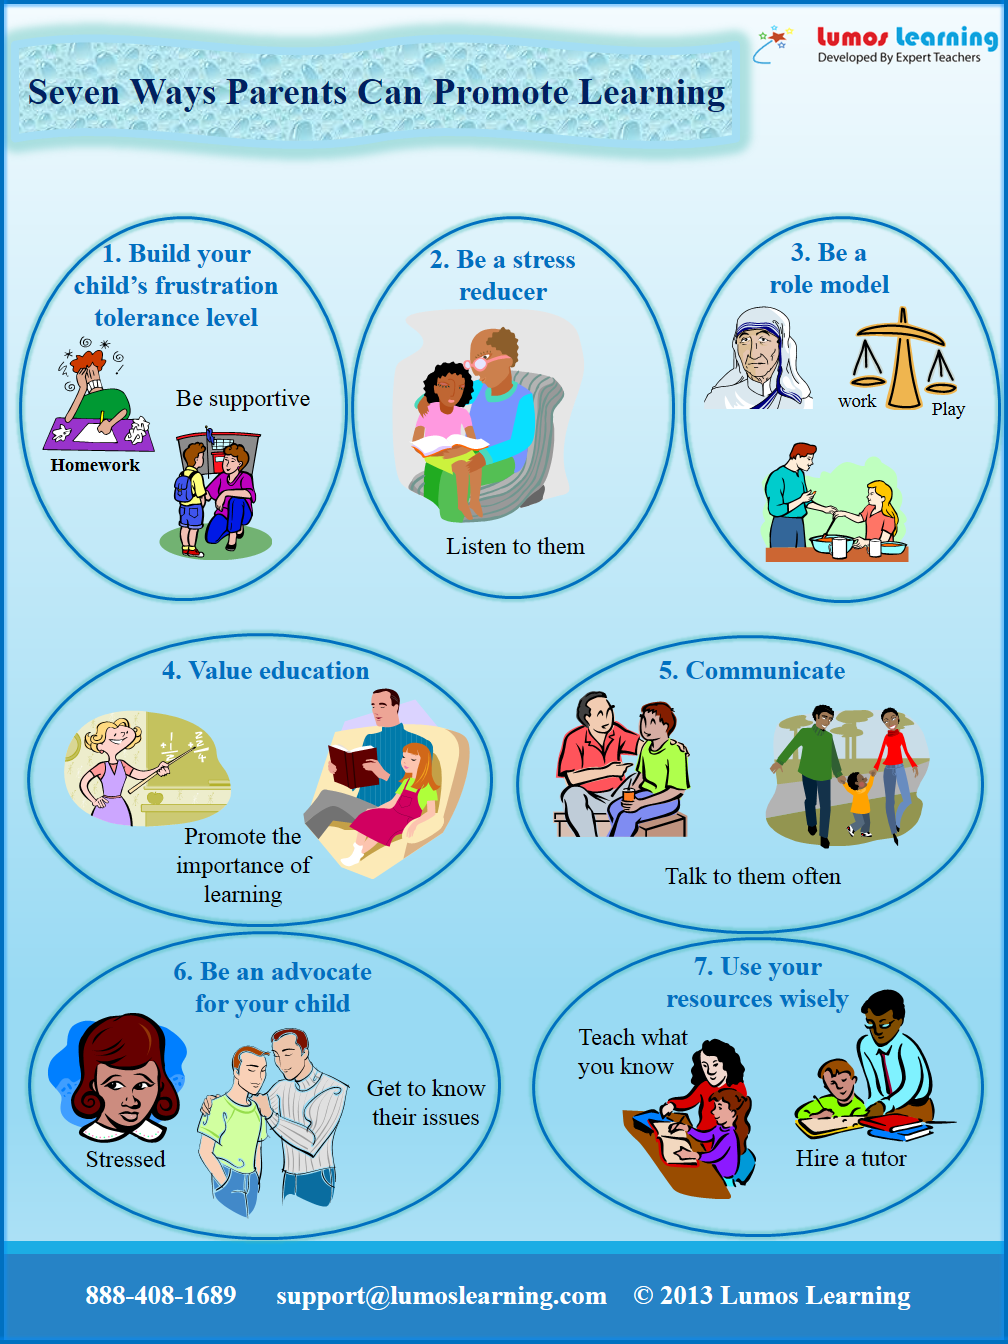 Seven Ways Parents Can Promote Learning - Infographic